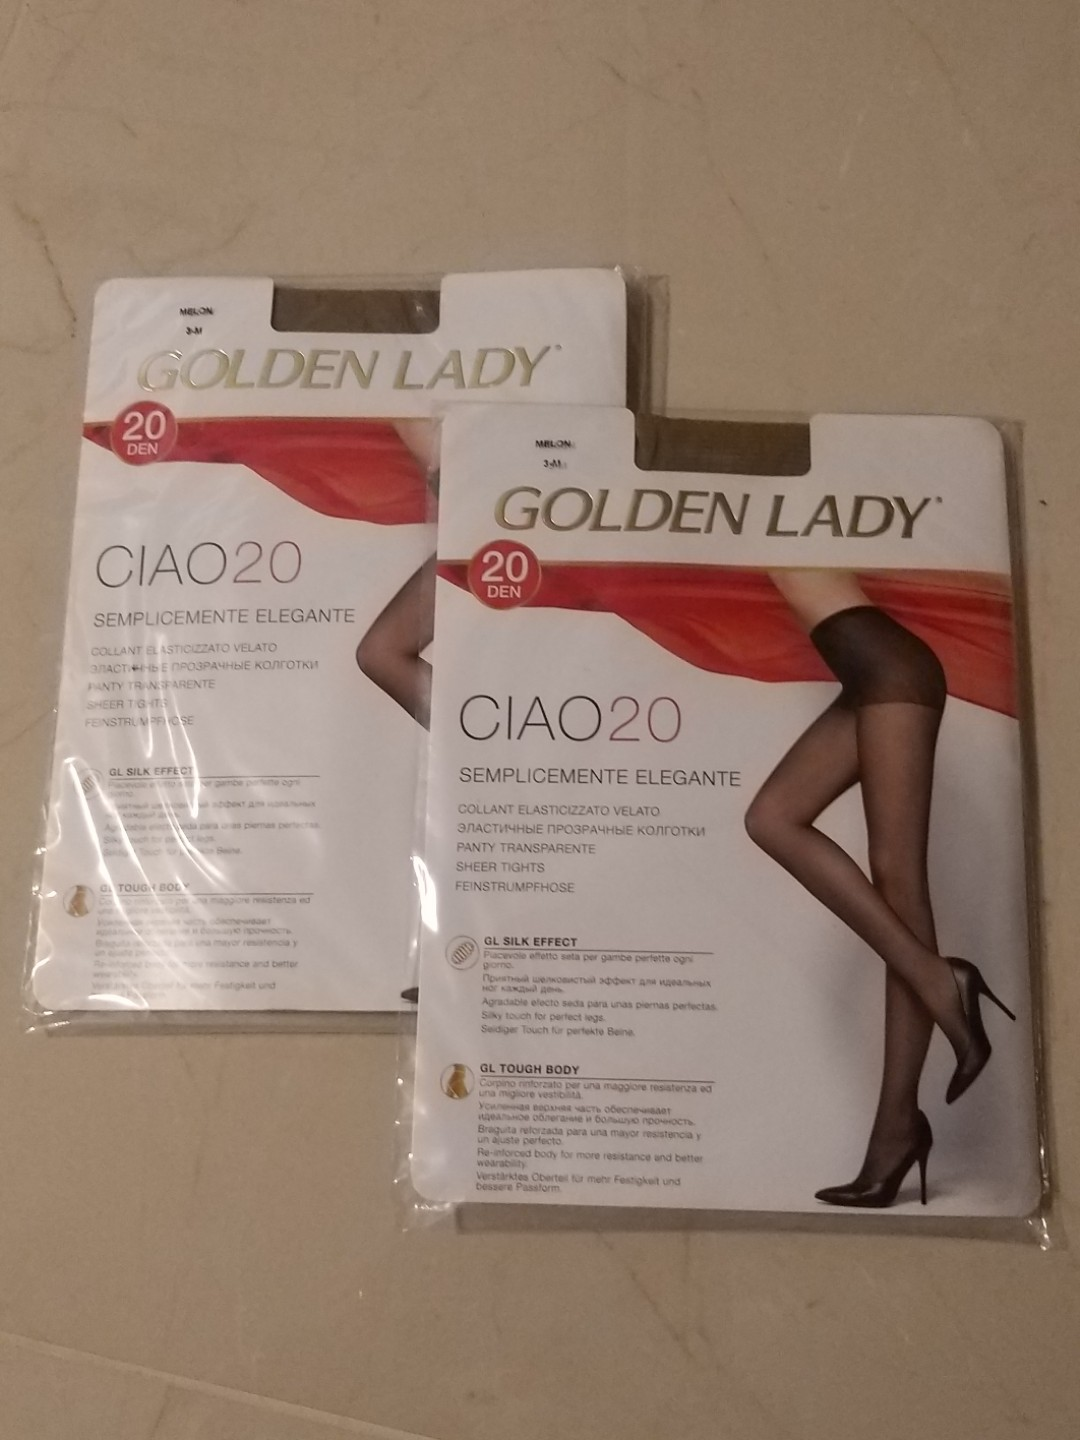 edd36e76c07 2 pairs of premium stockings (pantyhose) made in Italy